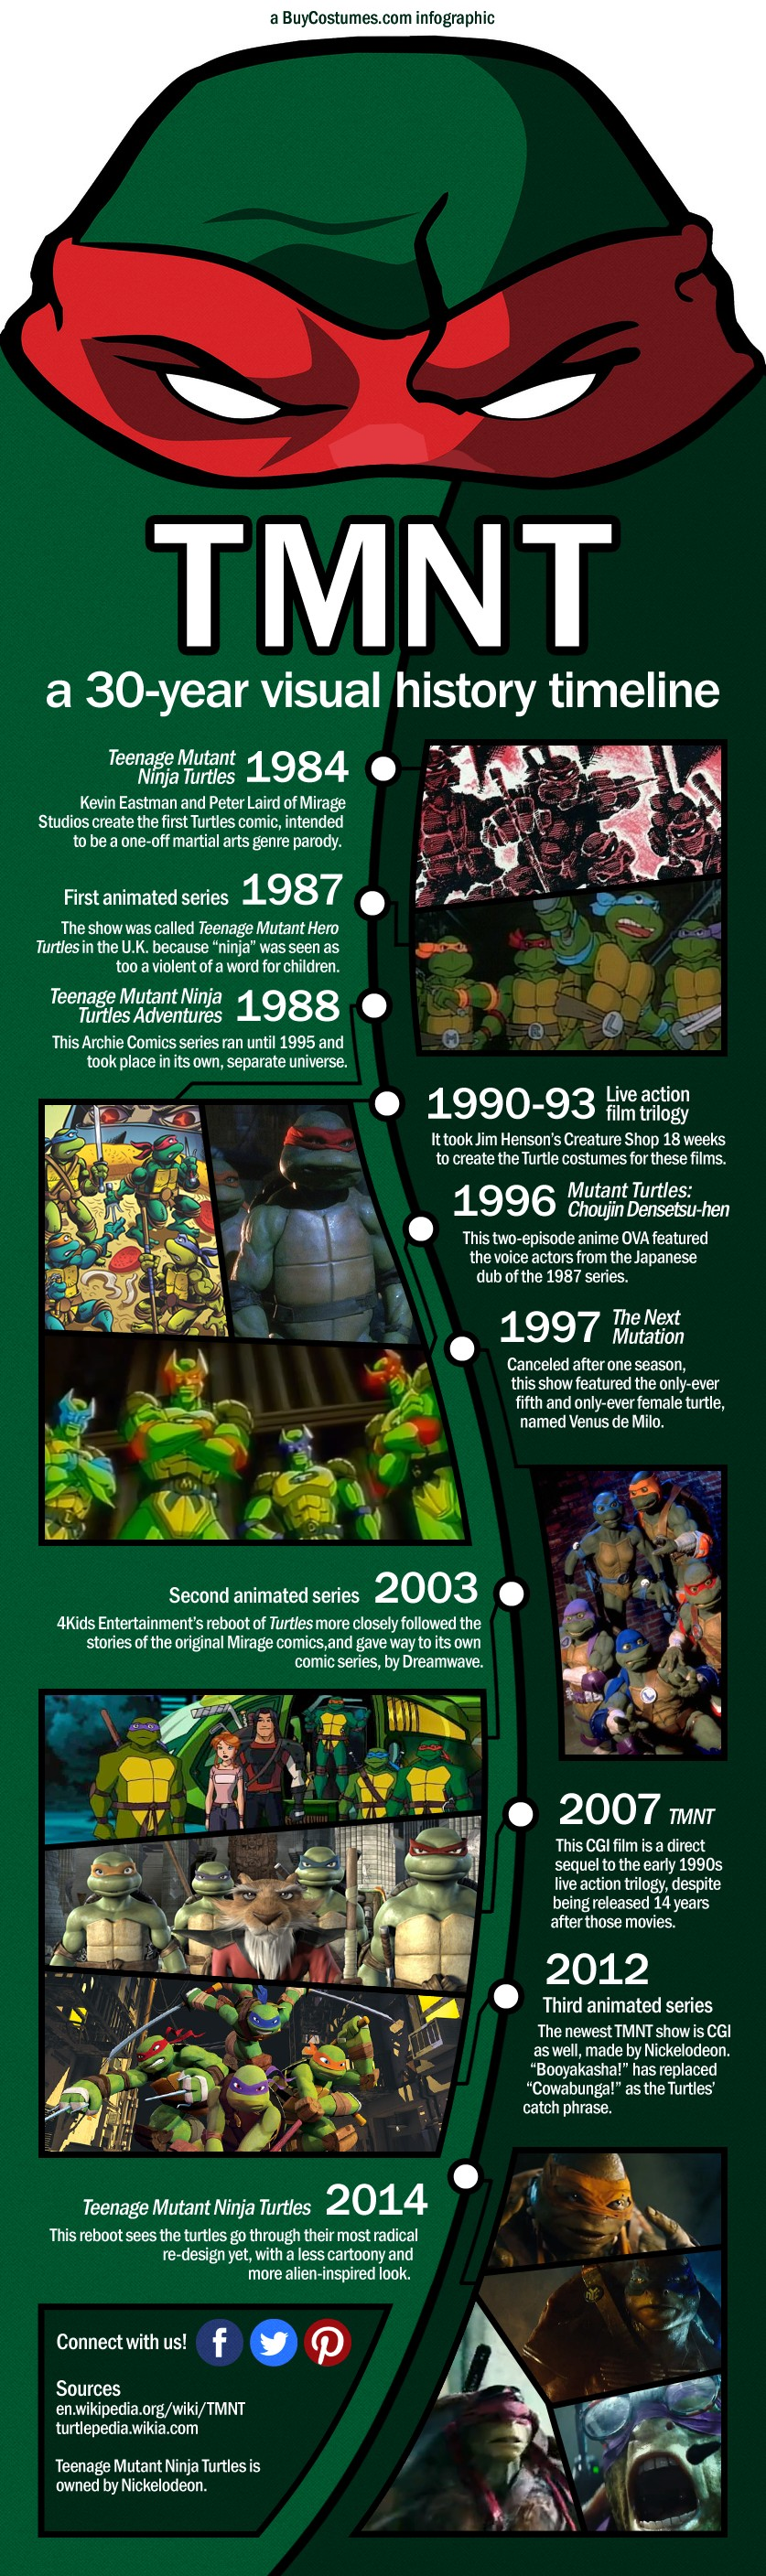 TMNT: A 30-Year Visual History Timeline